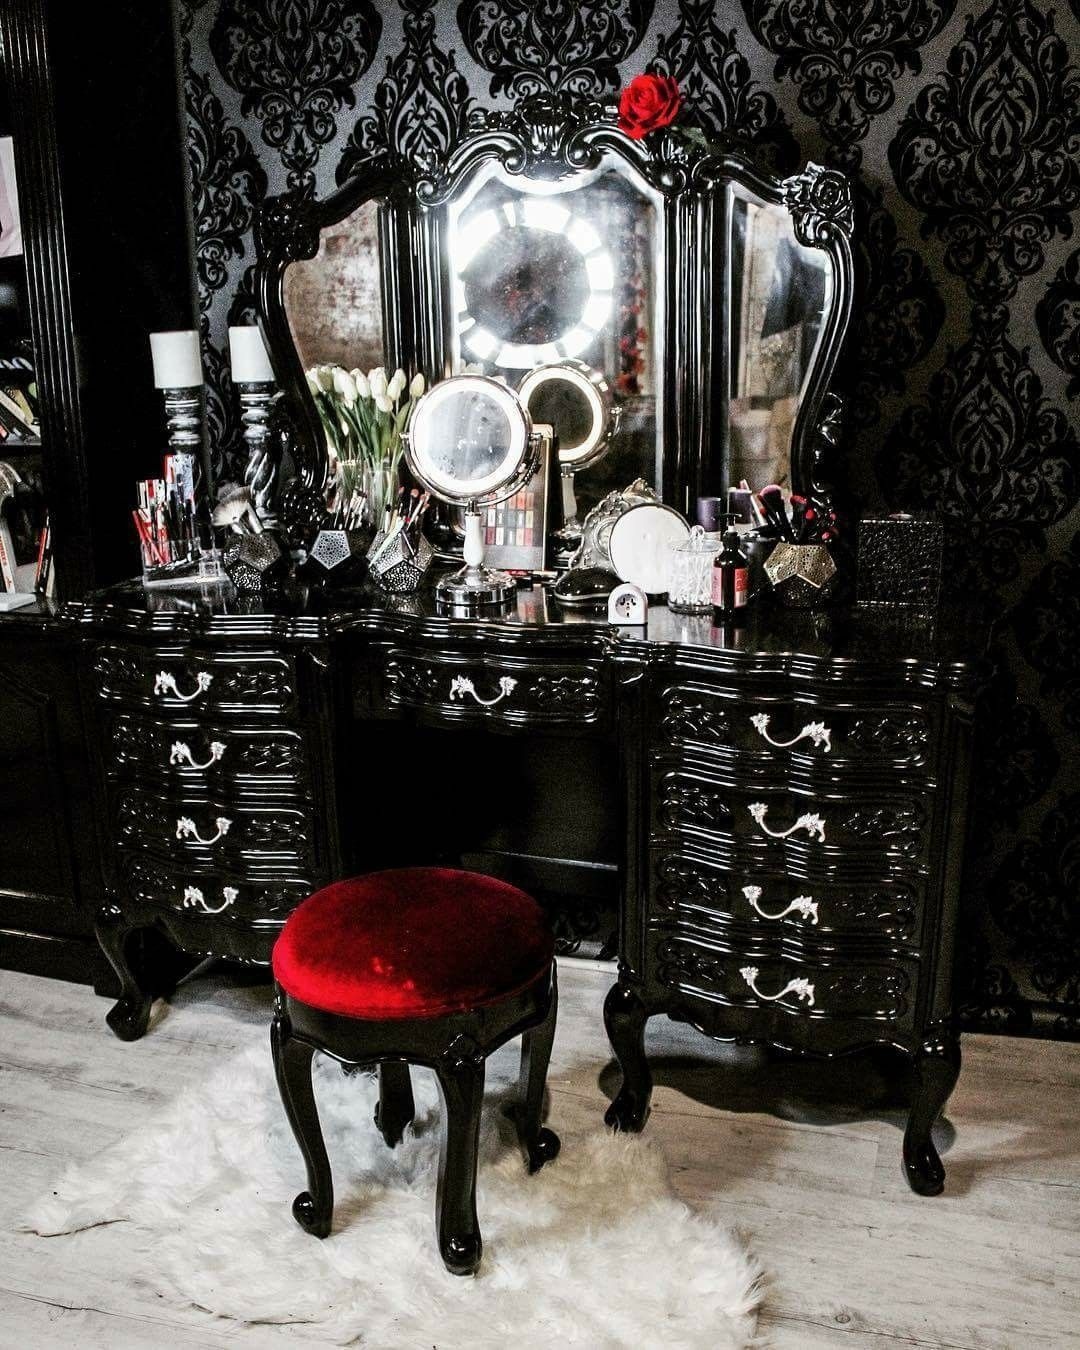 Mobili In Stile Gotico pin by hope h on home ☺ | gothic home decor, goth home